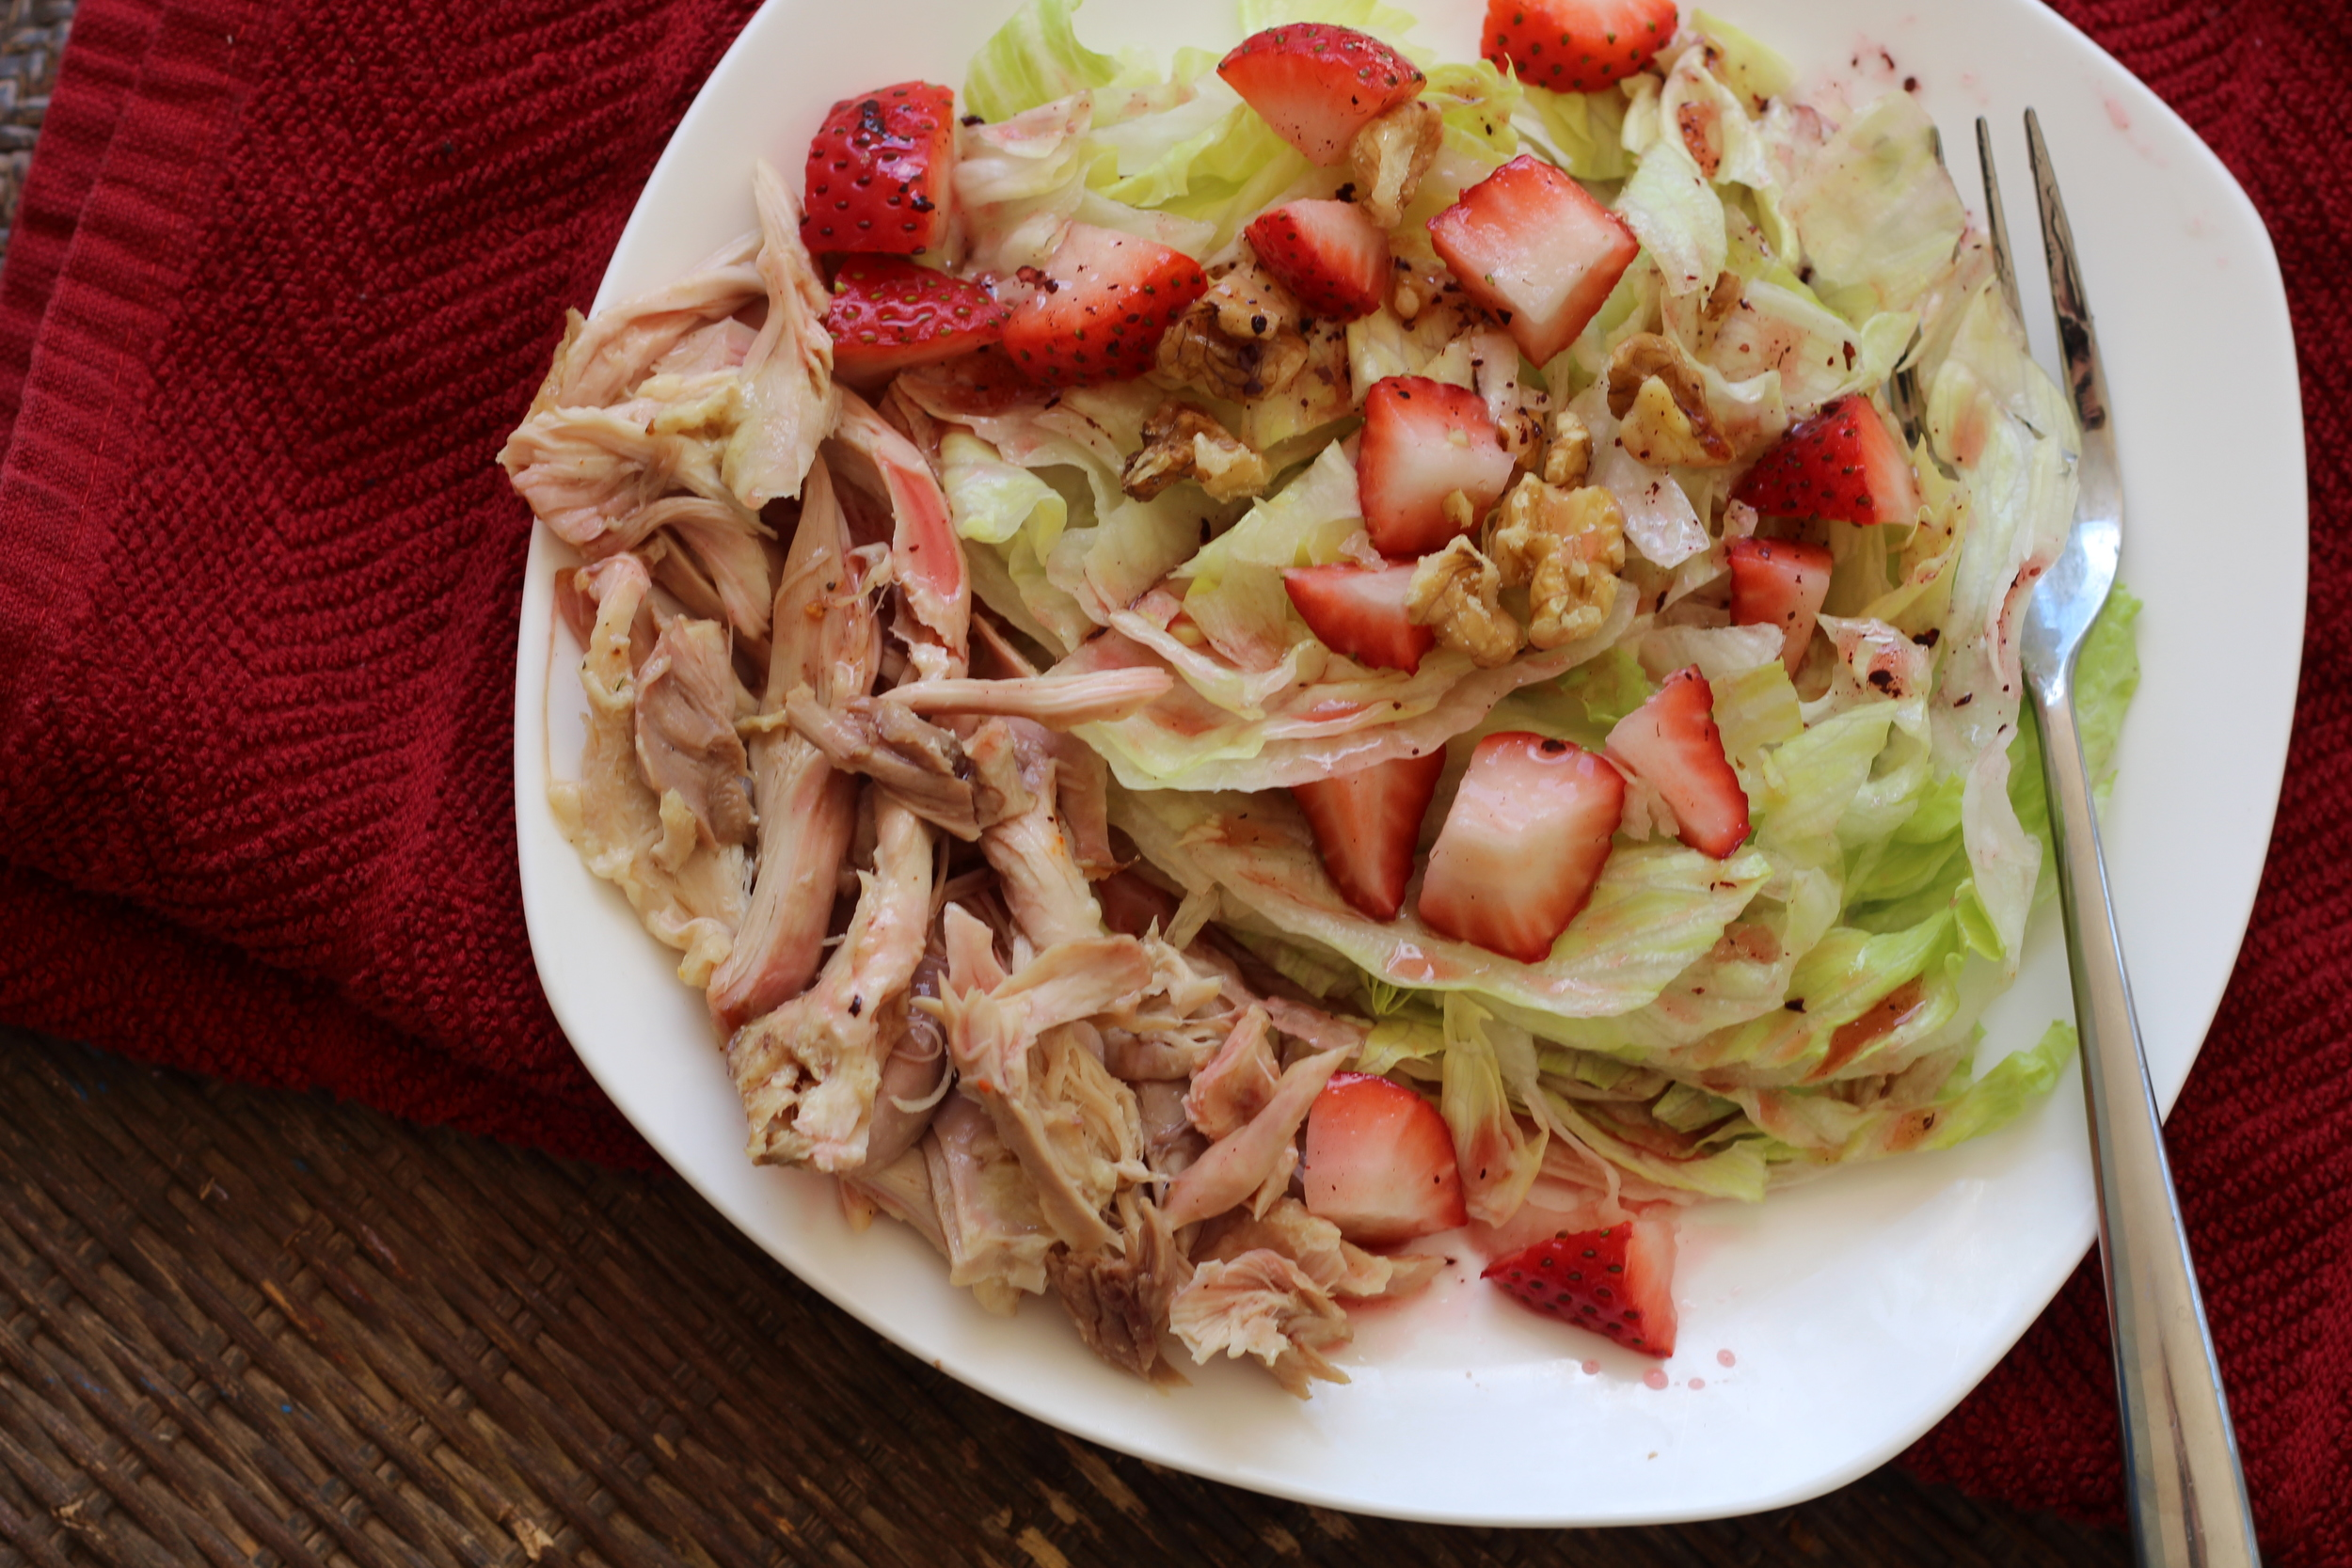 Dinner: (We got strawberries for SUPER cheap! haha!) So this is a Ice berg Lettuce Salad with Strawberries, rotisserie chicken, a little handful of walnuts, and Raspberry Vinaigrette